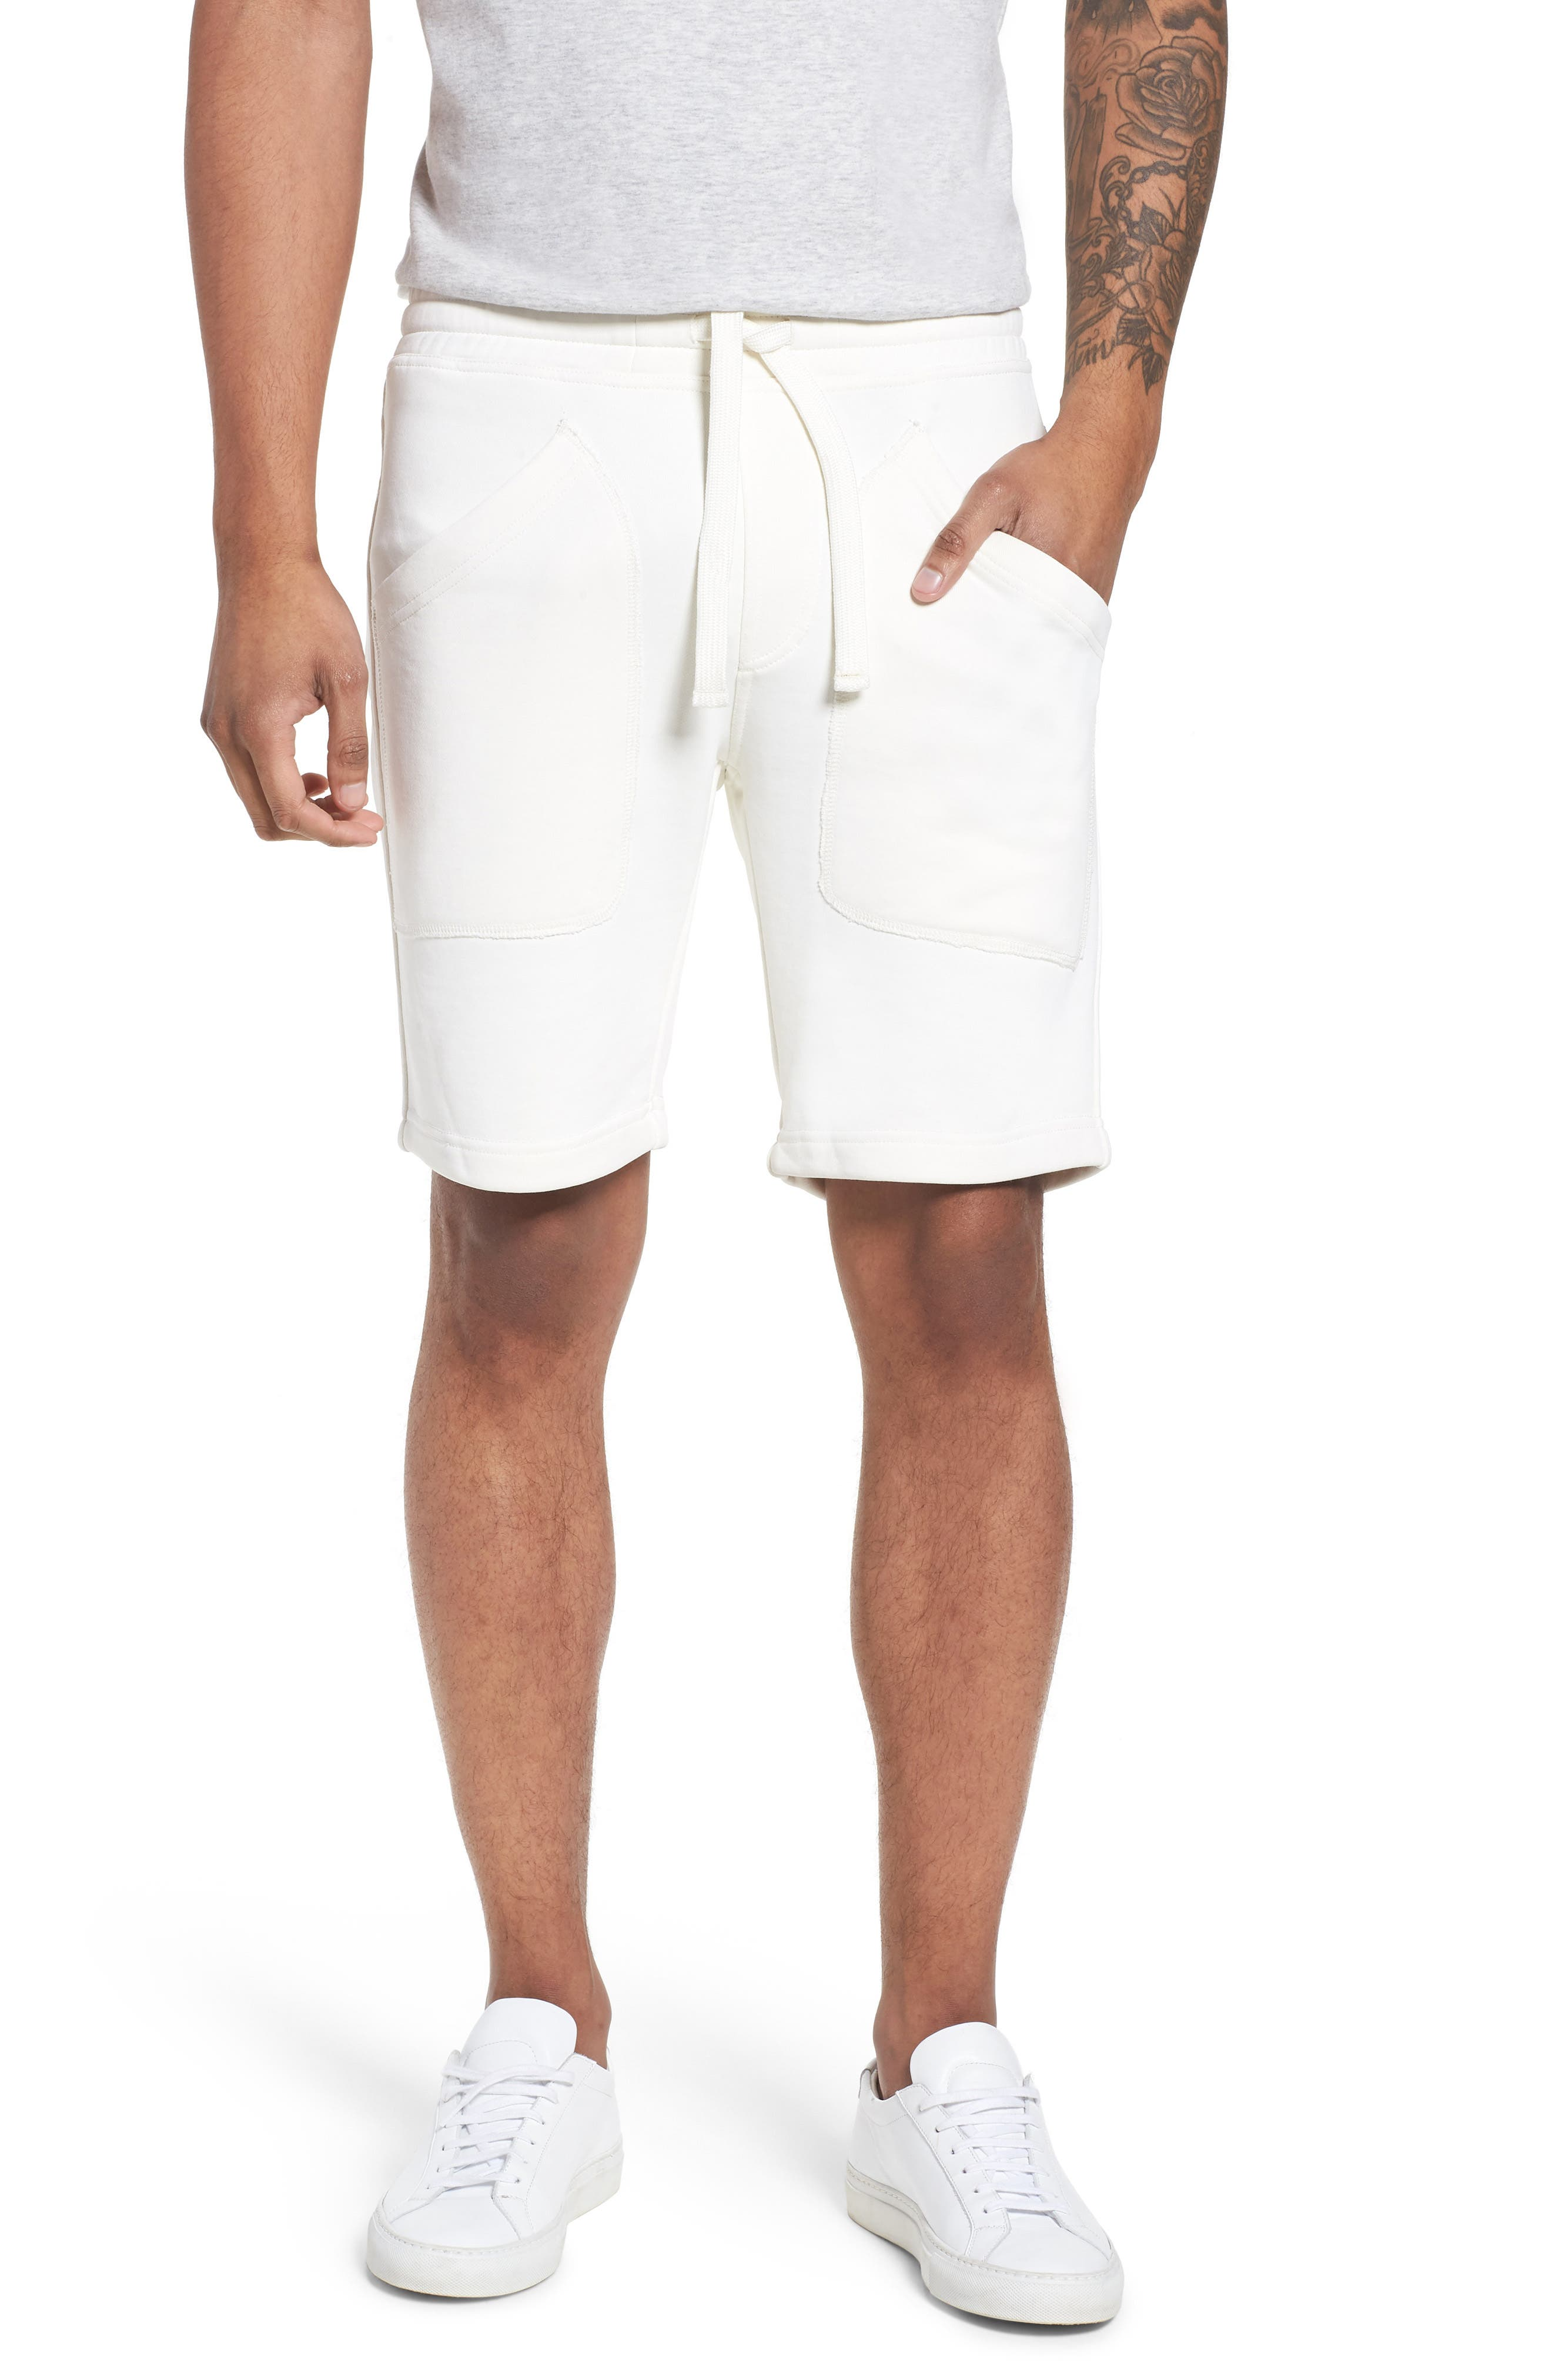 Lux French Terry Shorts,                             Main thumbnail 1, color,                             250